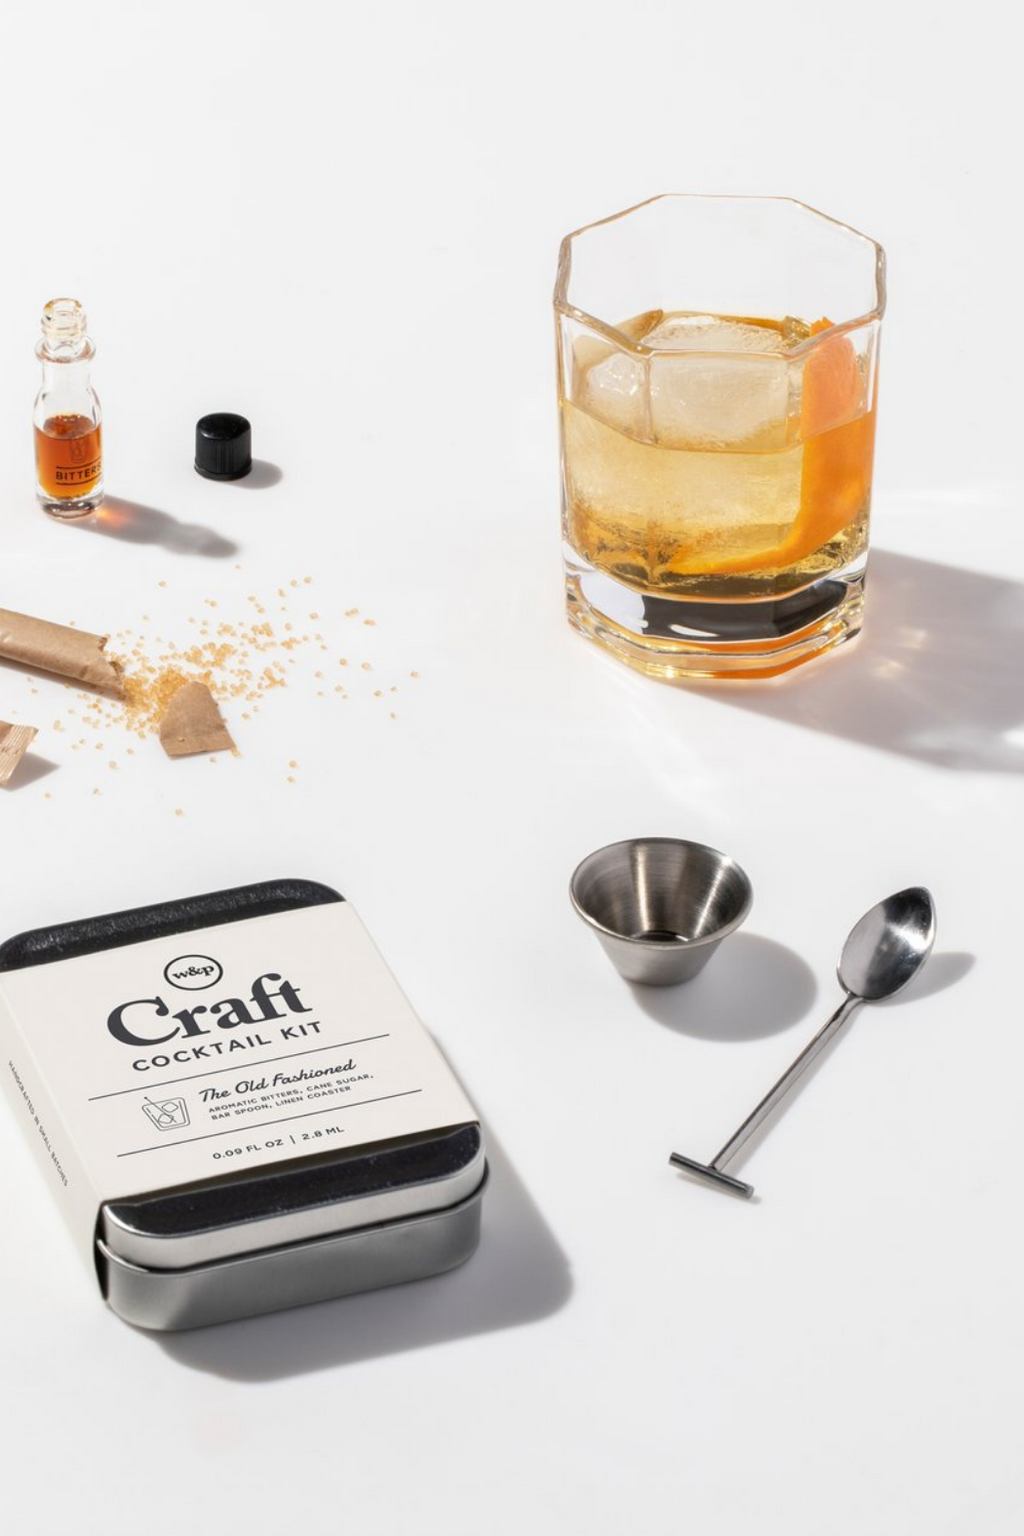 W&P Craft Cocktail Kit - Old Fashioned